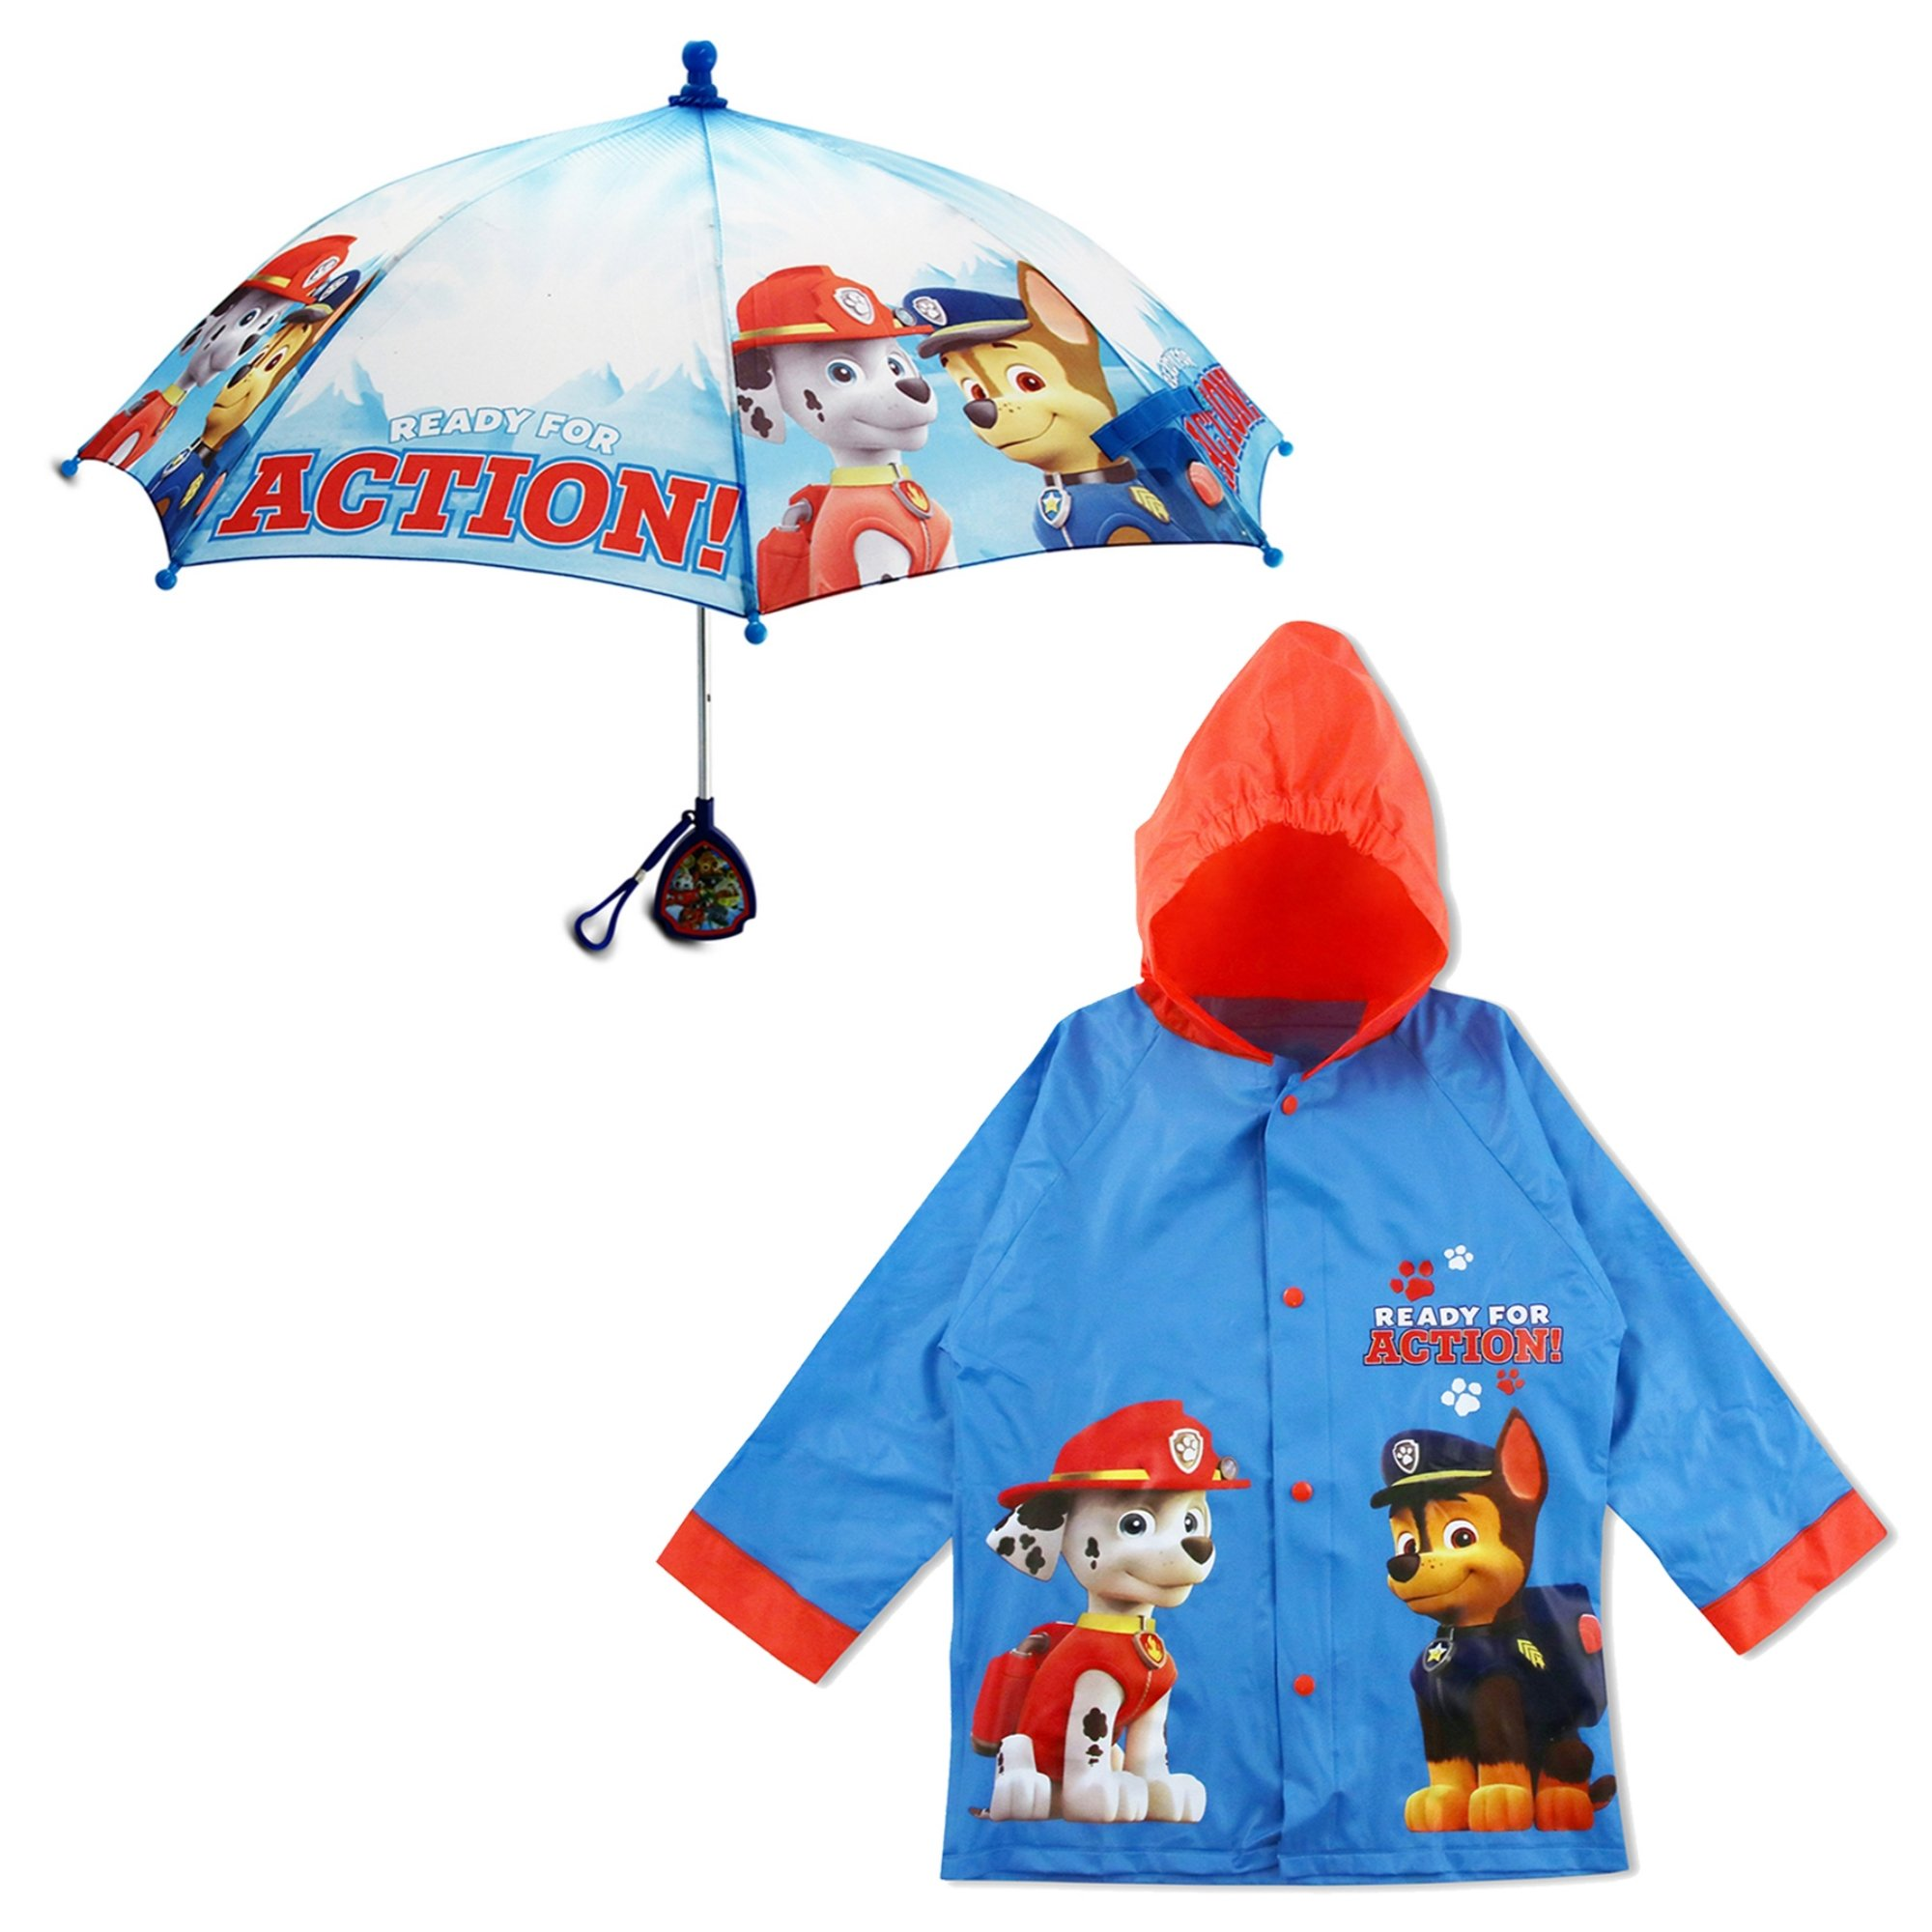 Nickelodeon Little Boy's Paw Patrol Slicker and Umbrella Set Outerwear, blue, Age 4-5